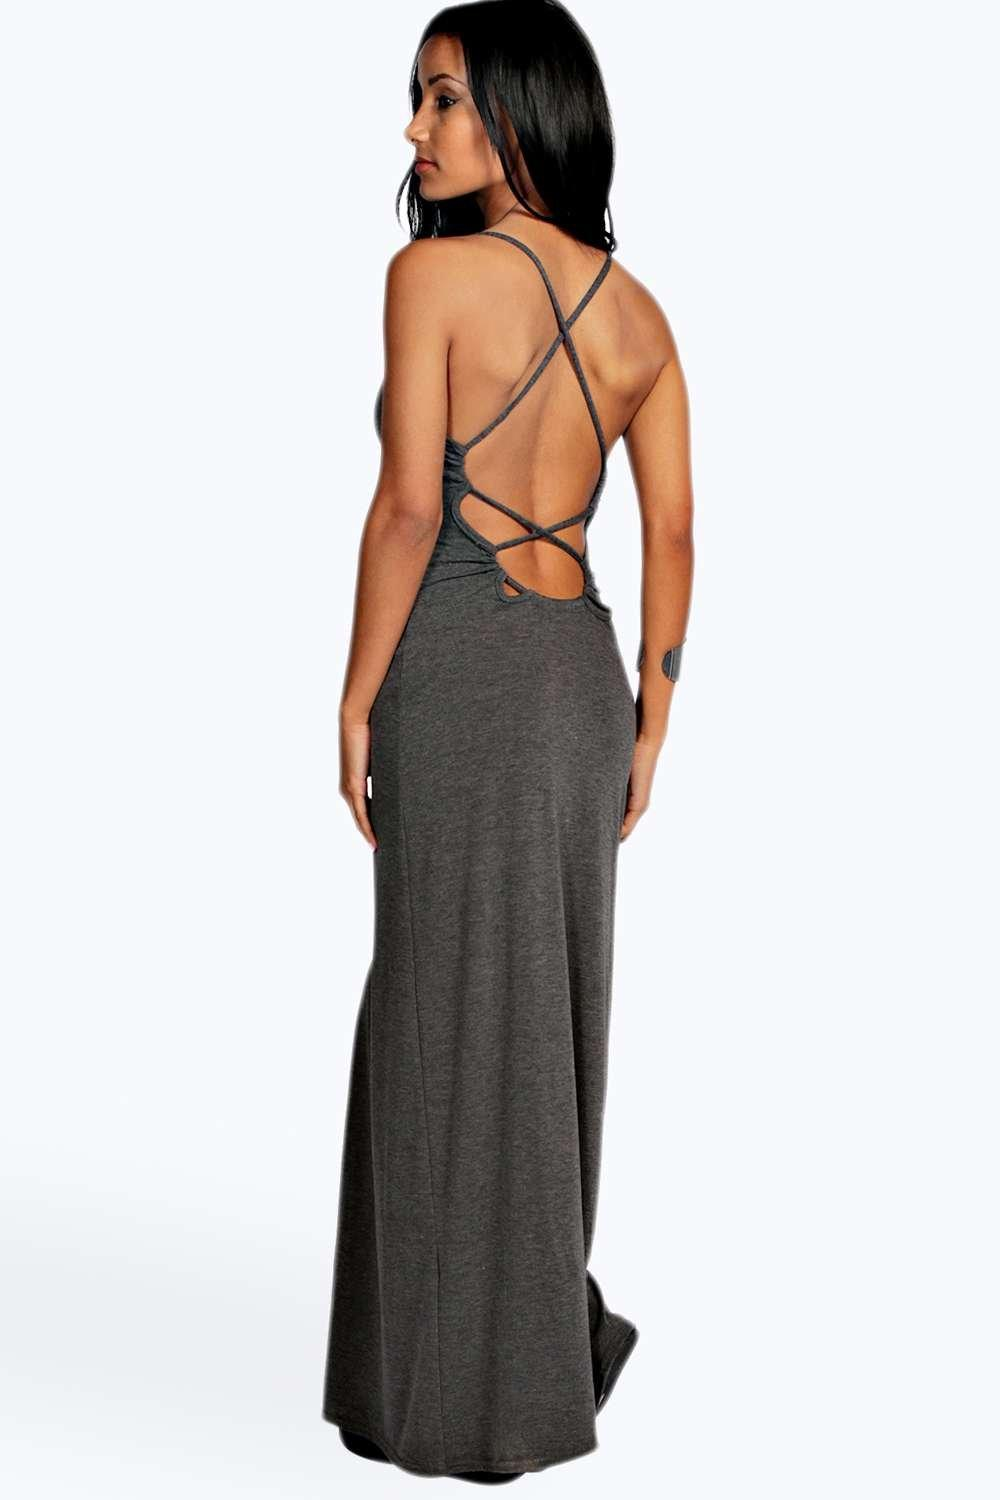 Tilly-Strappy-Back-Detail-Maxi-Dress-simplyoloni